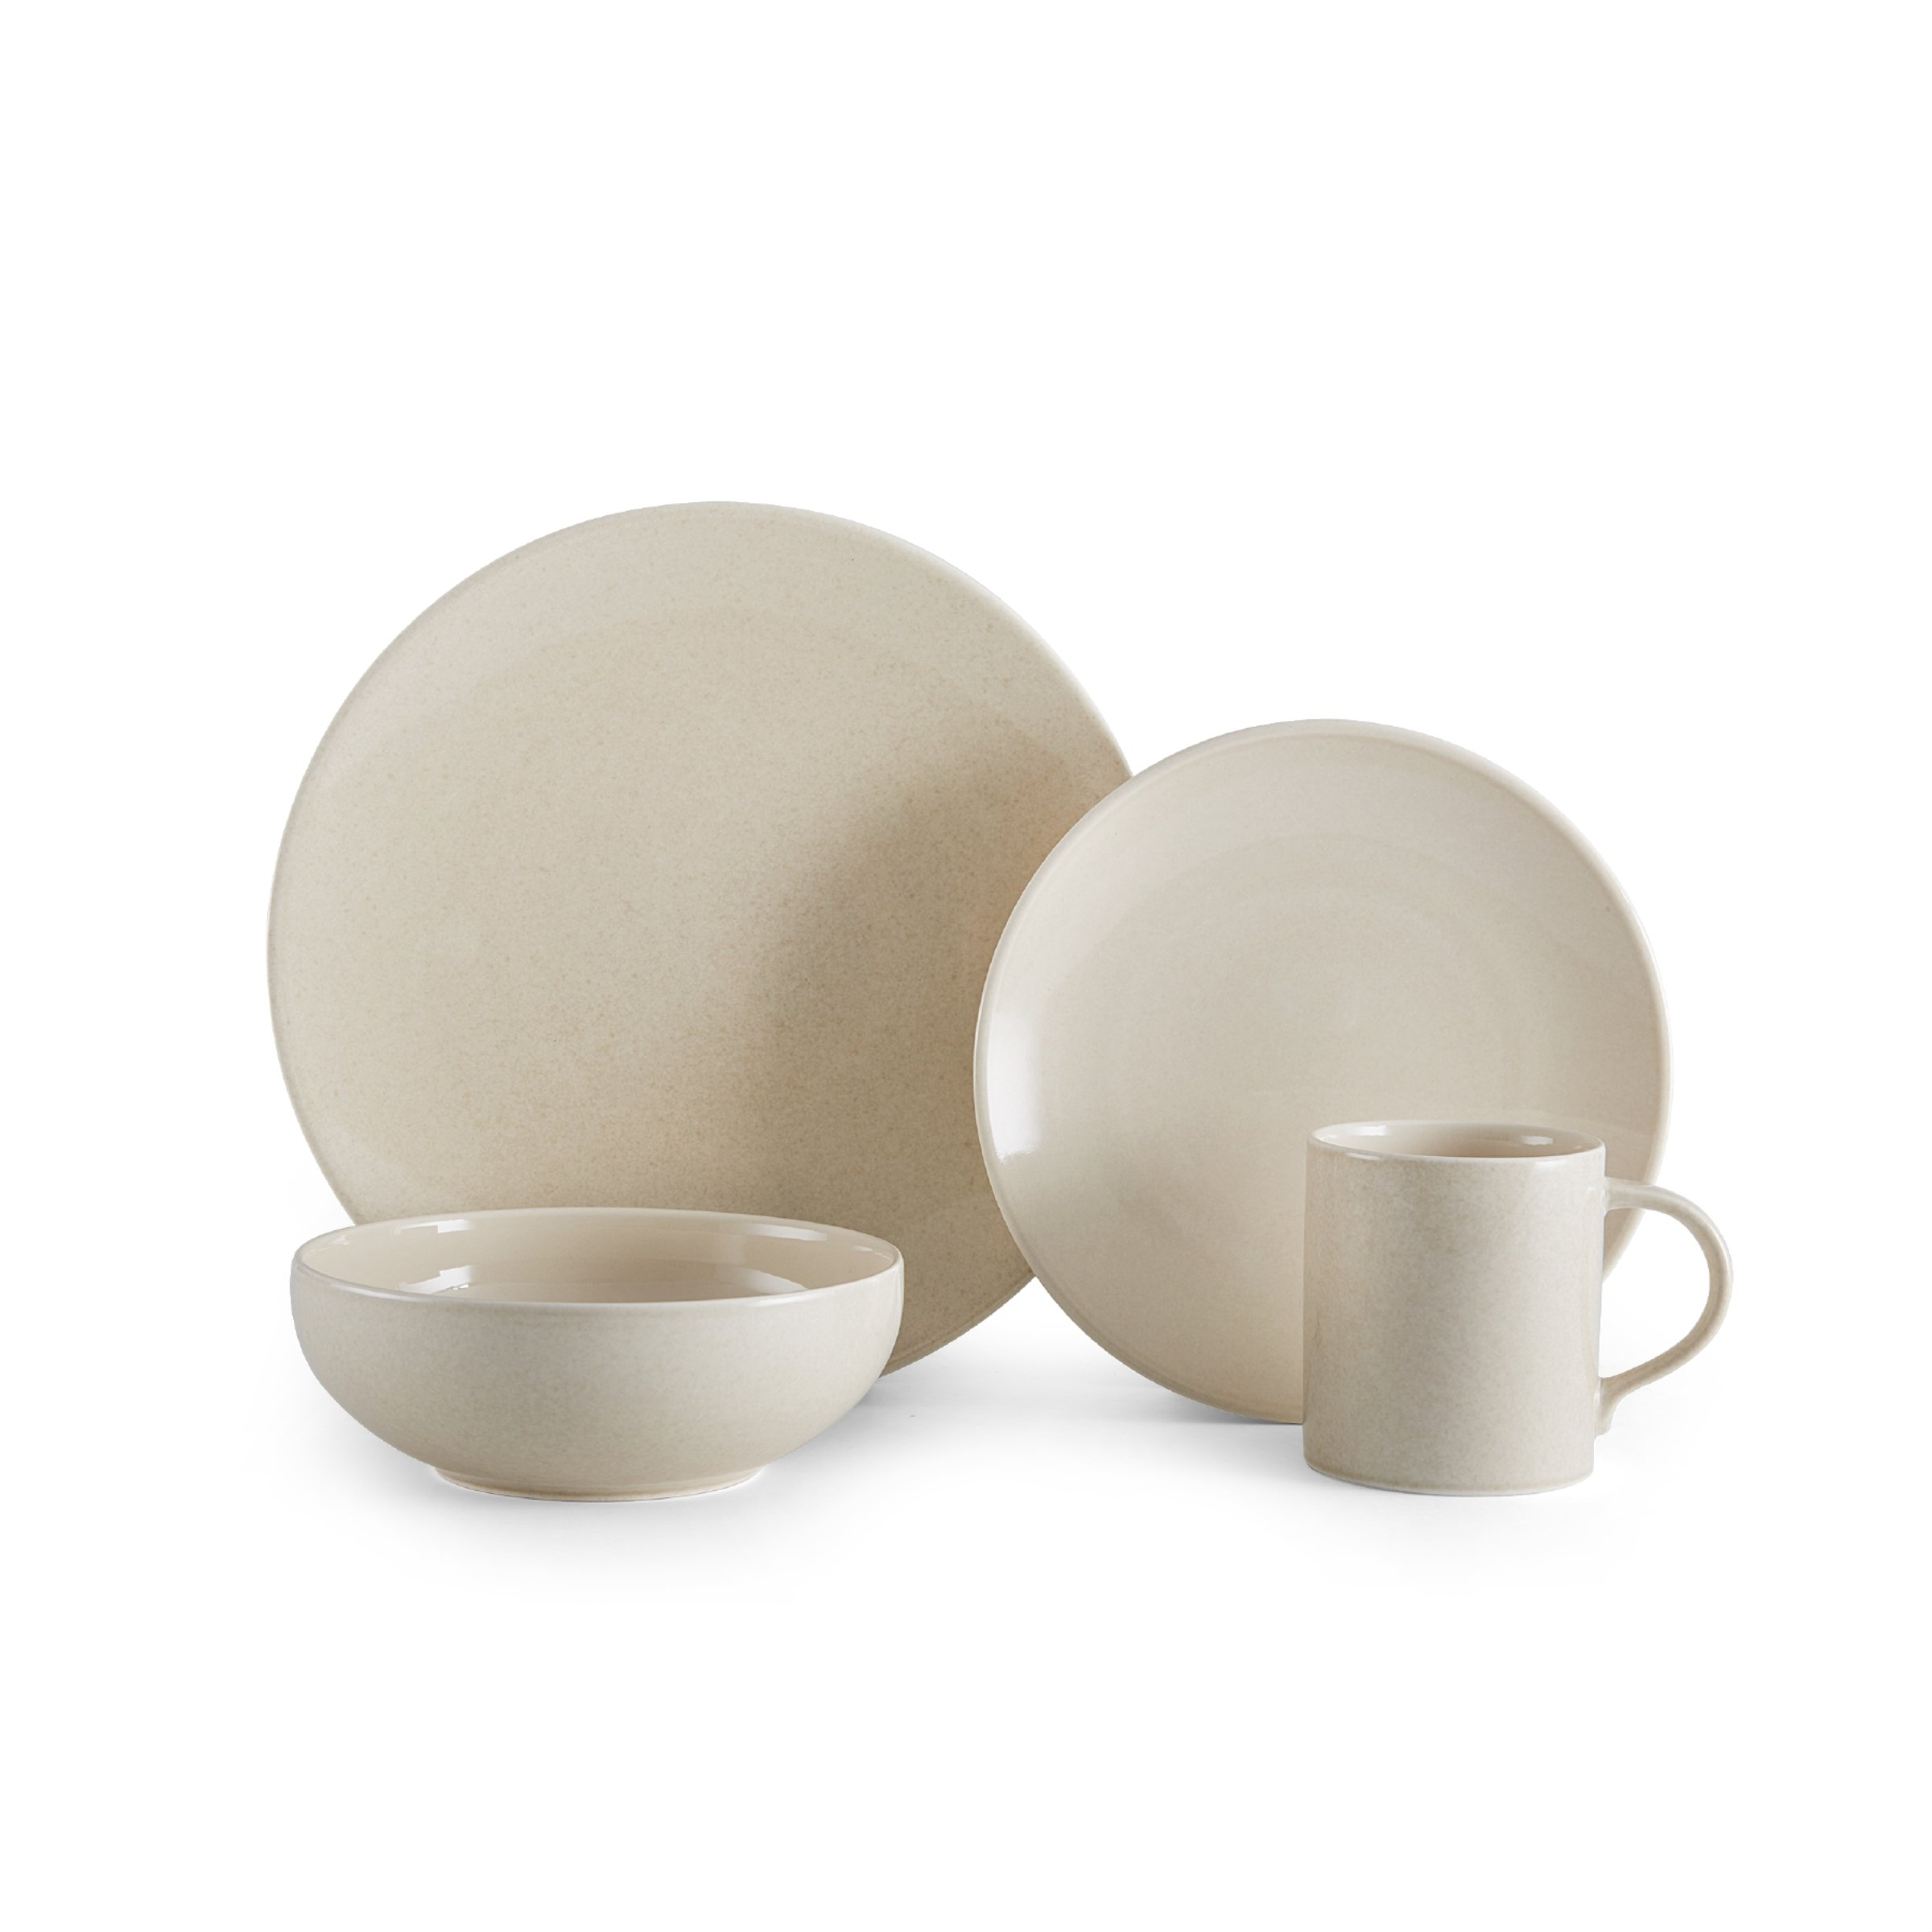 Mikasa Benson Beige 16-Piece Dinnerware Set, Service for 4